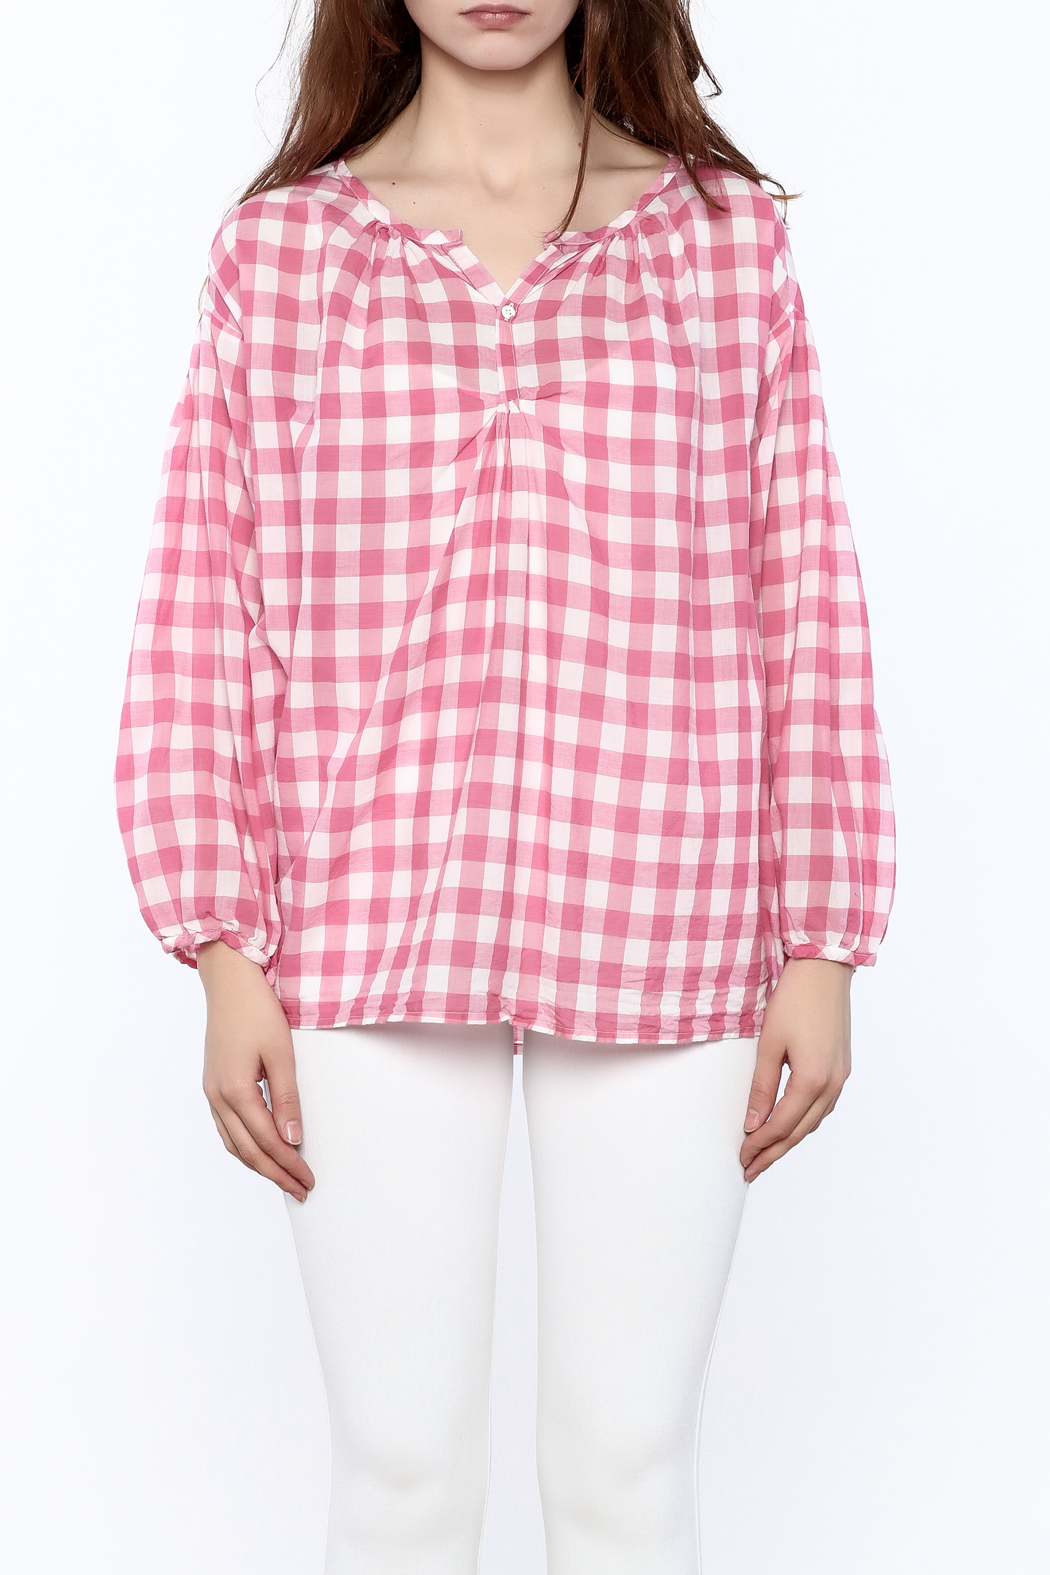 P.S. Shirt Pink Gingham Blouse - Side Cropped Image